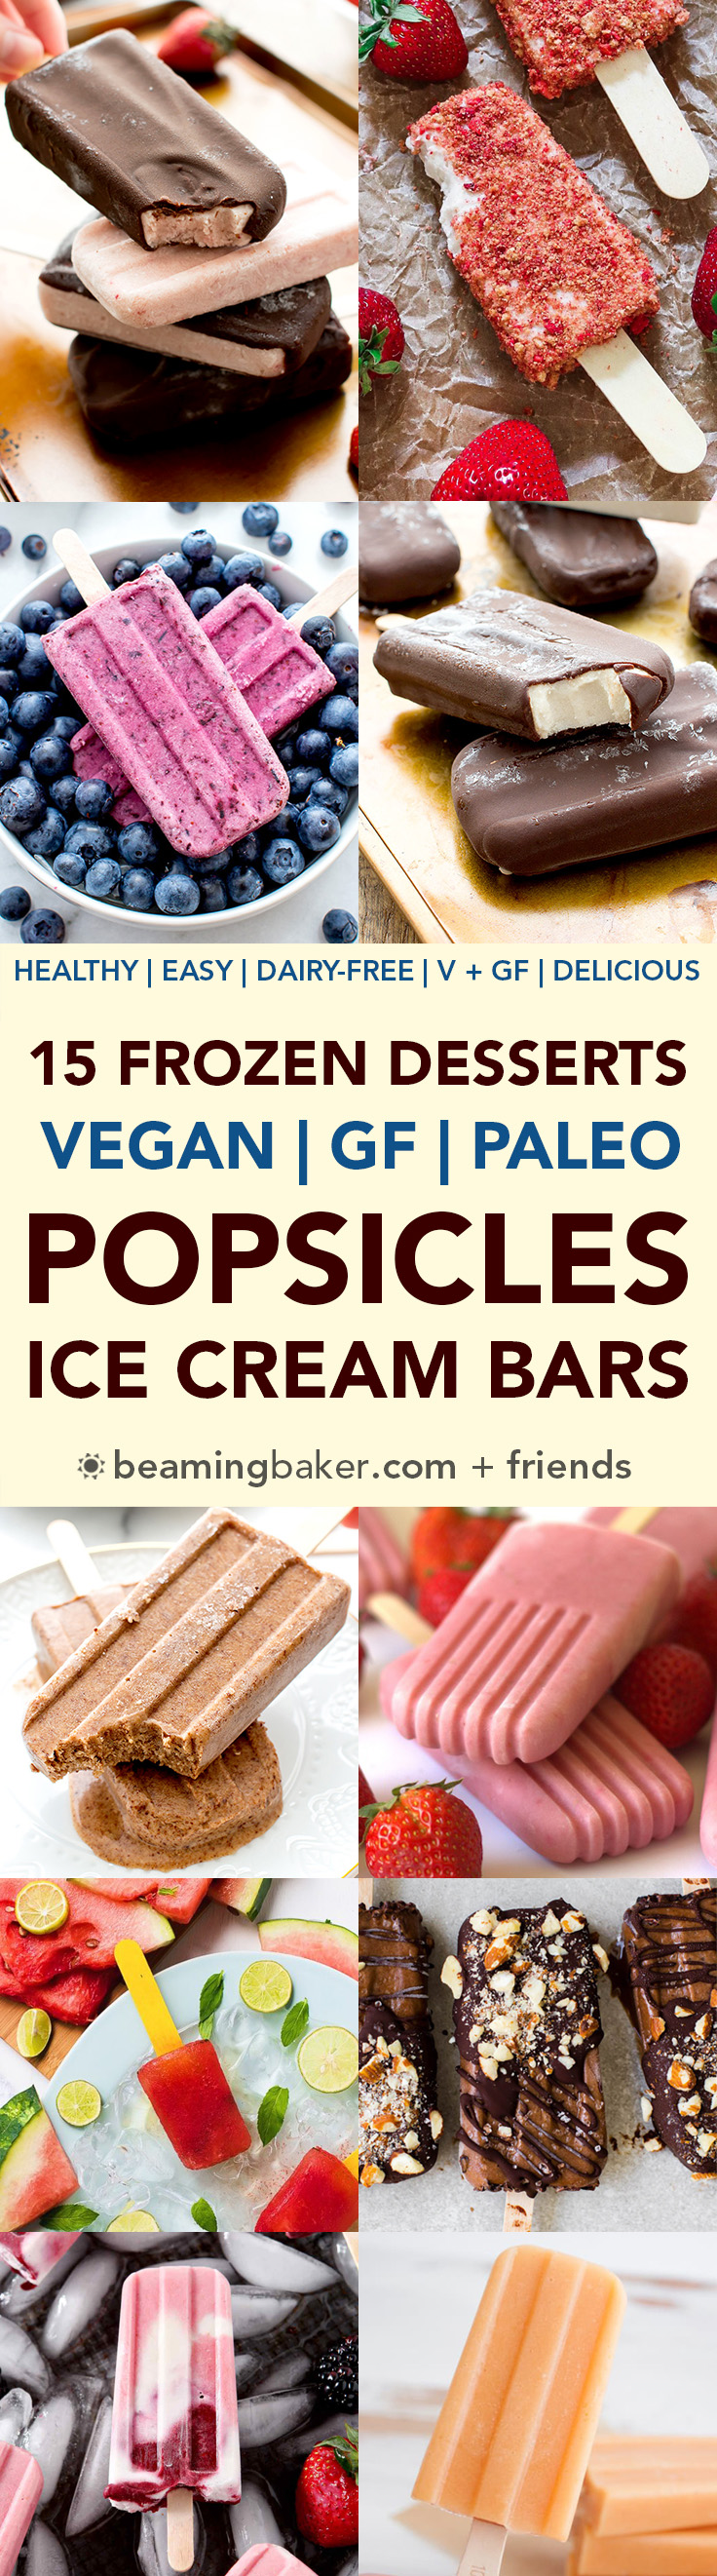 15 Healthy Frozen Desserts Made in a Popsicle Mold (V, DF, Paleo): a frozen dessert collection of dairy-free, paleo and vegan treats made with a popsicle mold! #Vegan #Paleo #DairyFree #GlutenFree | BeamingBaker.com